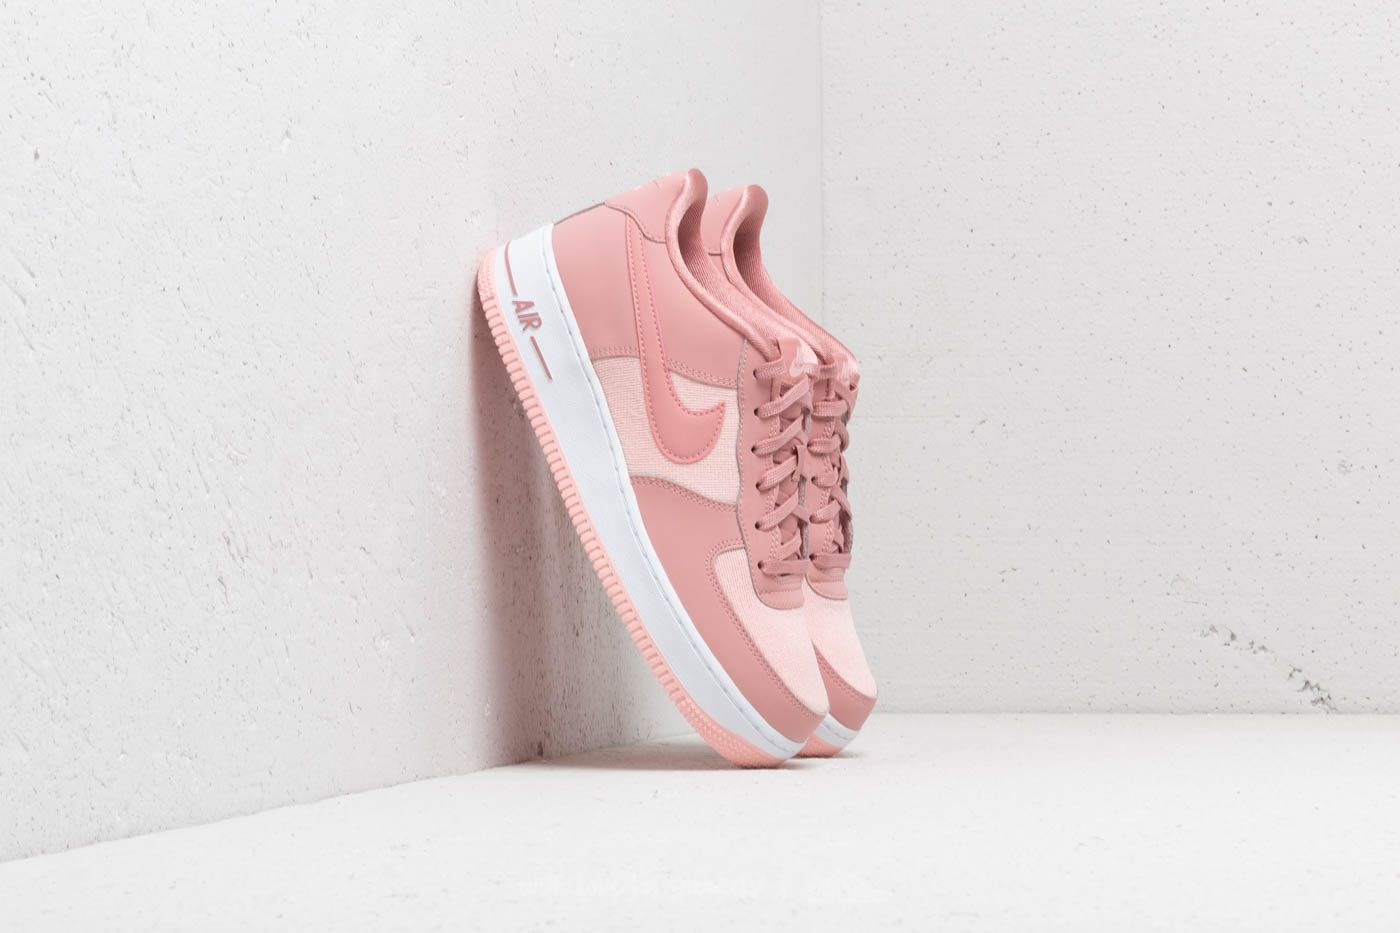 Nike Air Force 1 Lv8 Gs Rust Pink Rust Pink Storm Pink Pink